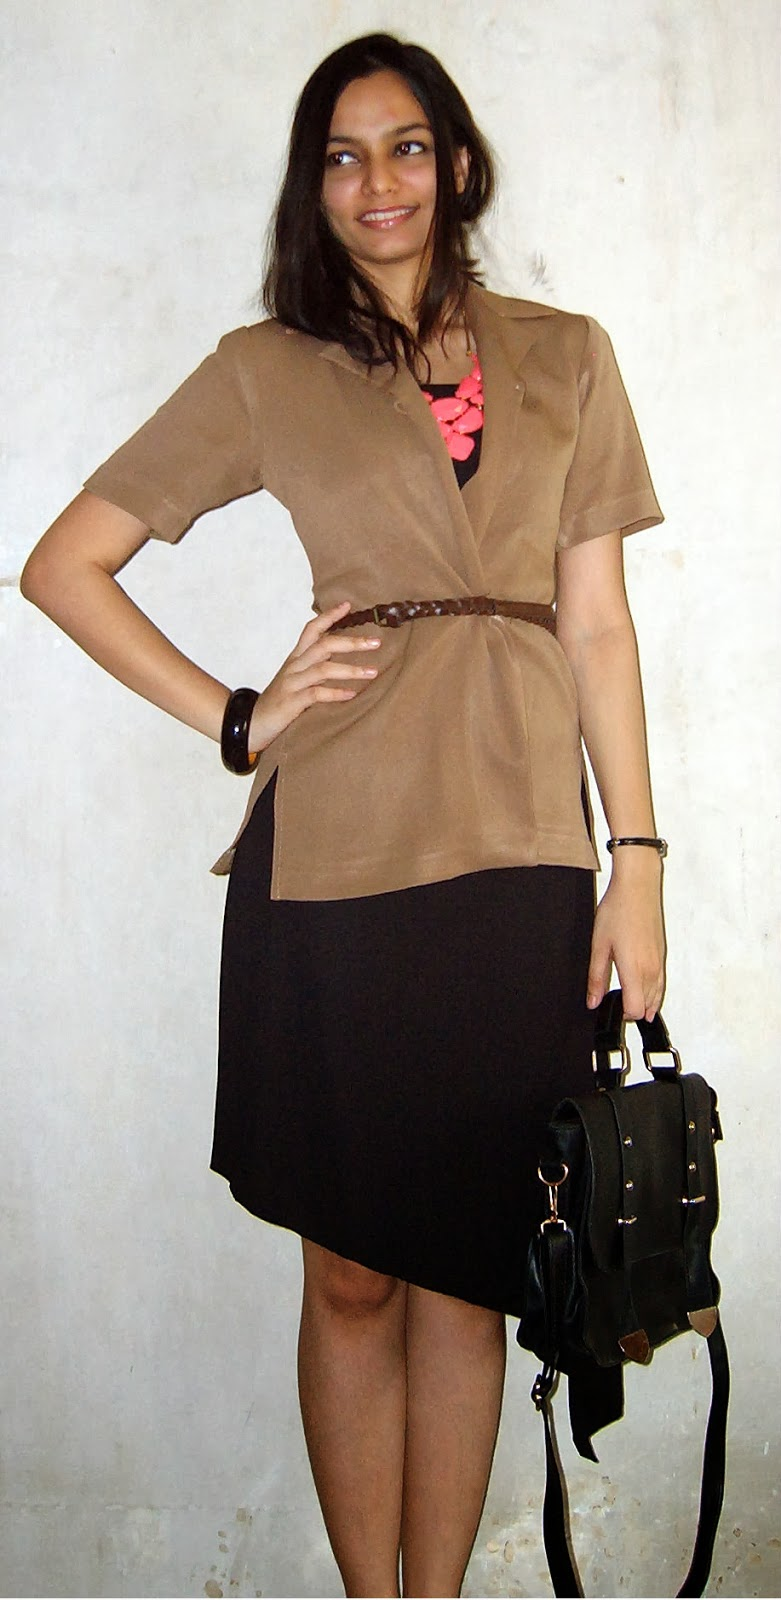 LBD, tan blazer, vintage blazer, workwear, mumbai streetstyle, asymmetric dress, messy updo, fashion blogger